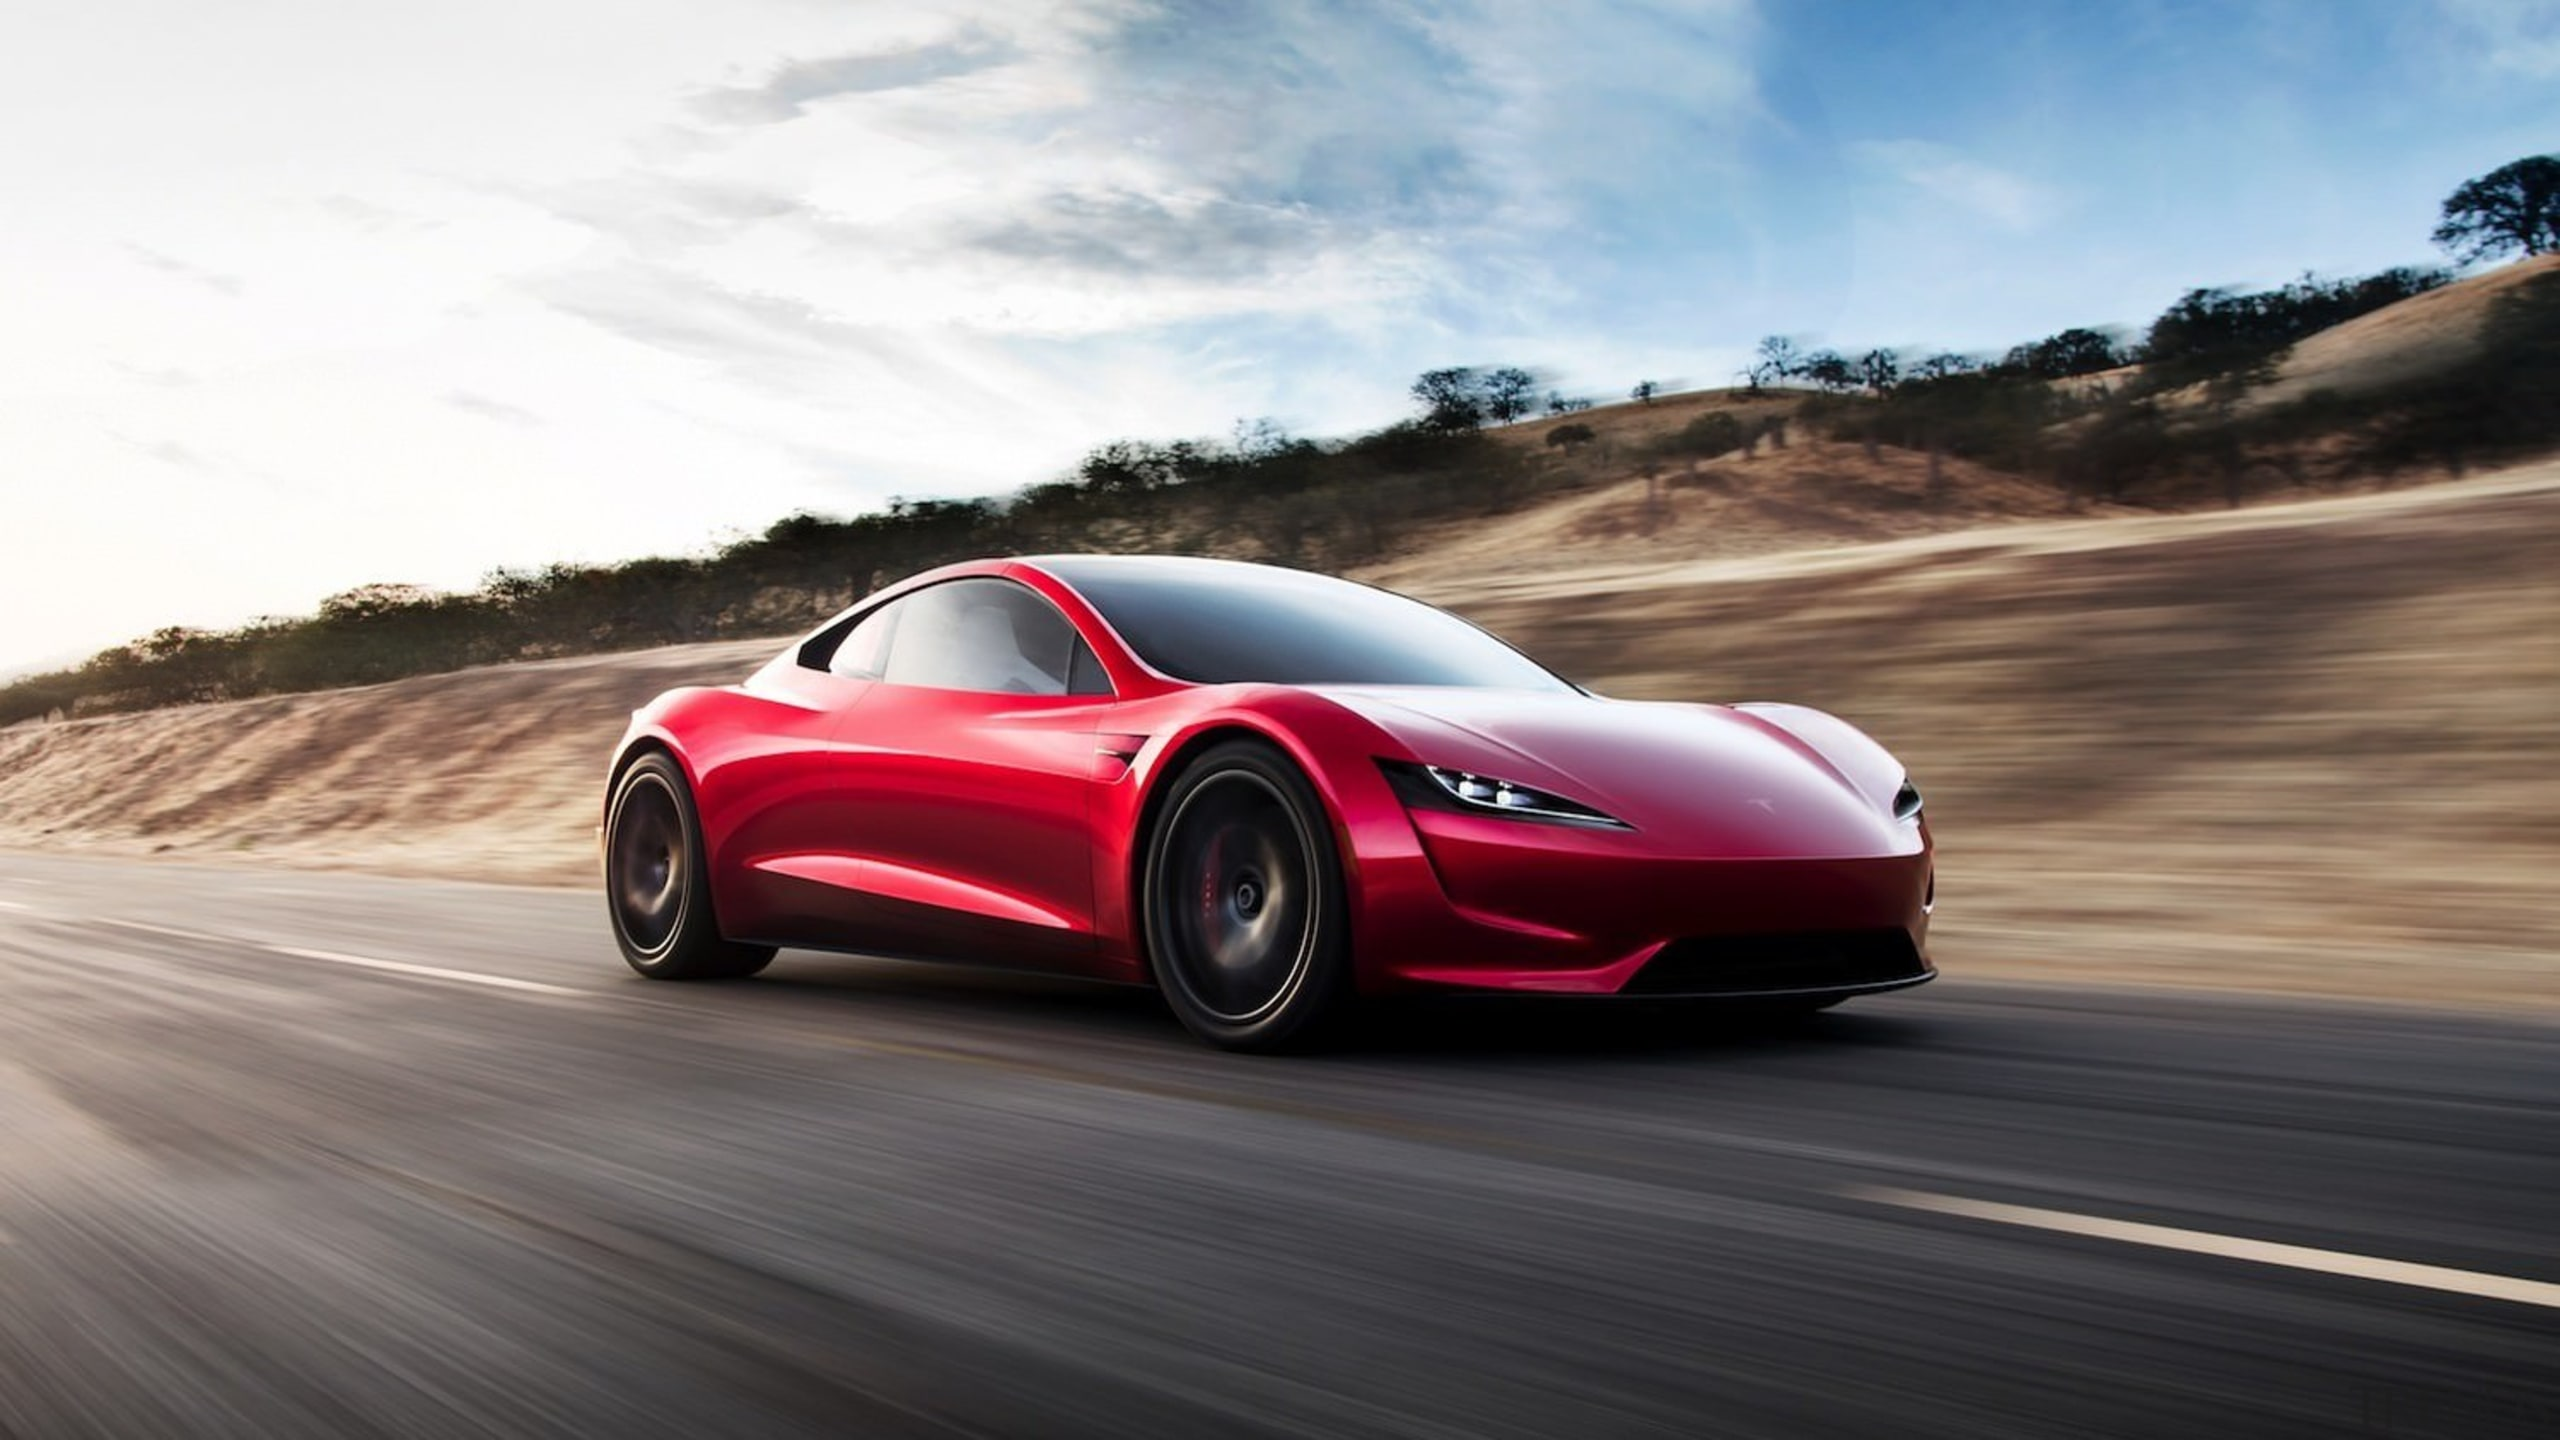 Tesla's new Roadster - Tesla's new Roadster - automotive design, car, computer wallpaper, concept car, family car, land vehicle, luxury vehicle, mid size car, motor vehicle, muscle car, performance car, personal luxury car, race car, sports car, supercar, vehicle, white, black